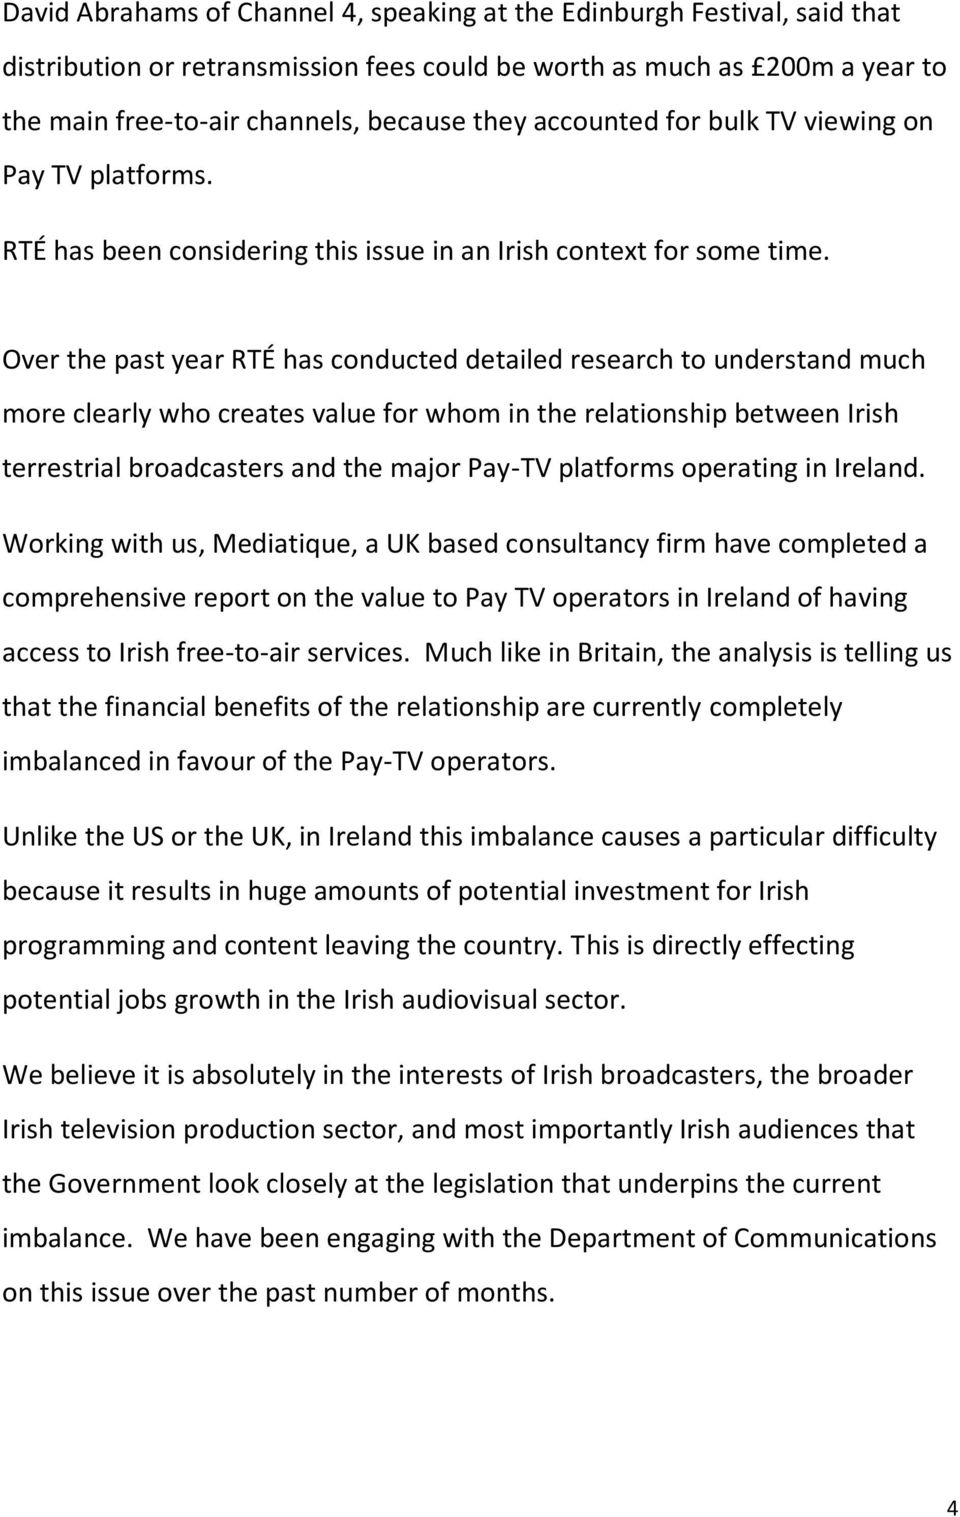 Over the past year RTÉ has conducted detailed research to understand much more clearly who creates value for whom in the relationship between Irish terrestrial broadcasters and the major Pay-TV